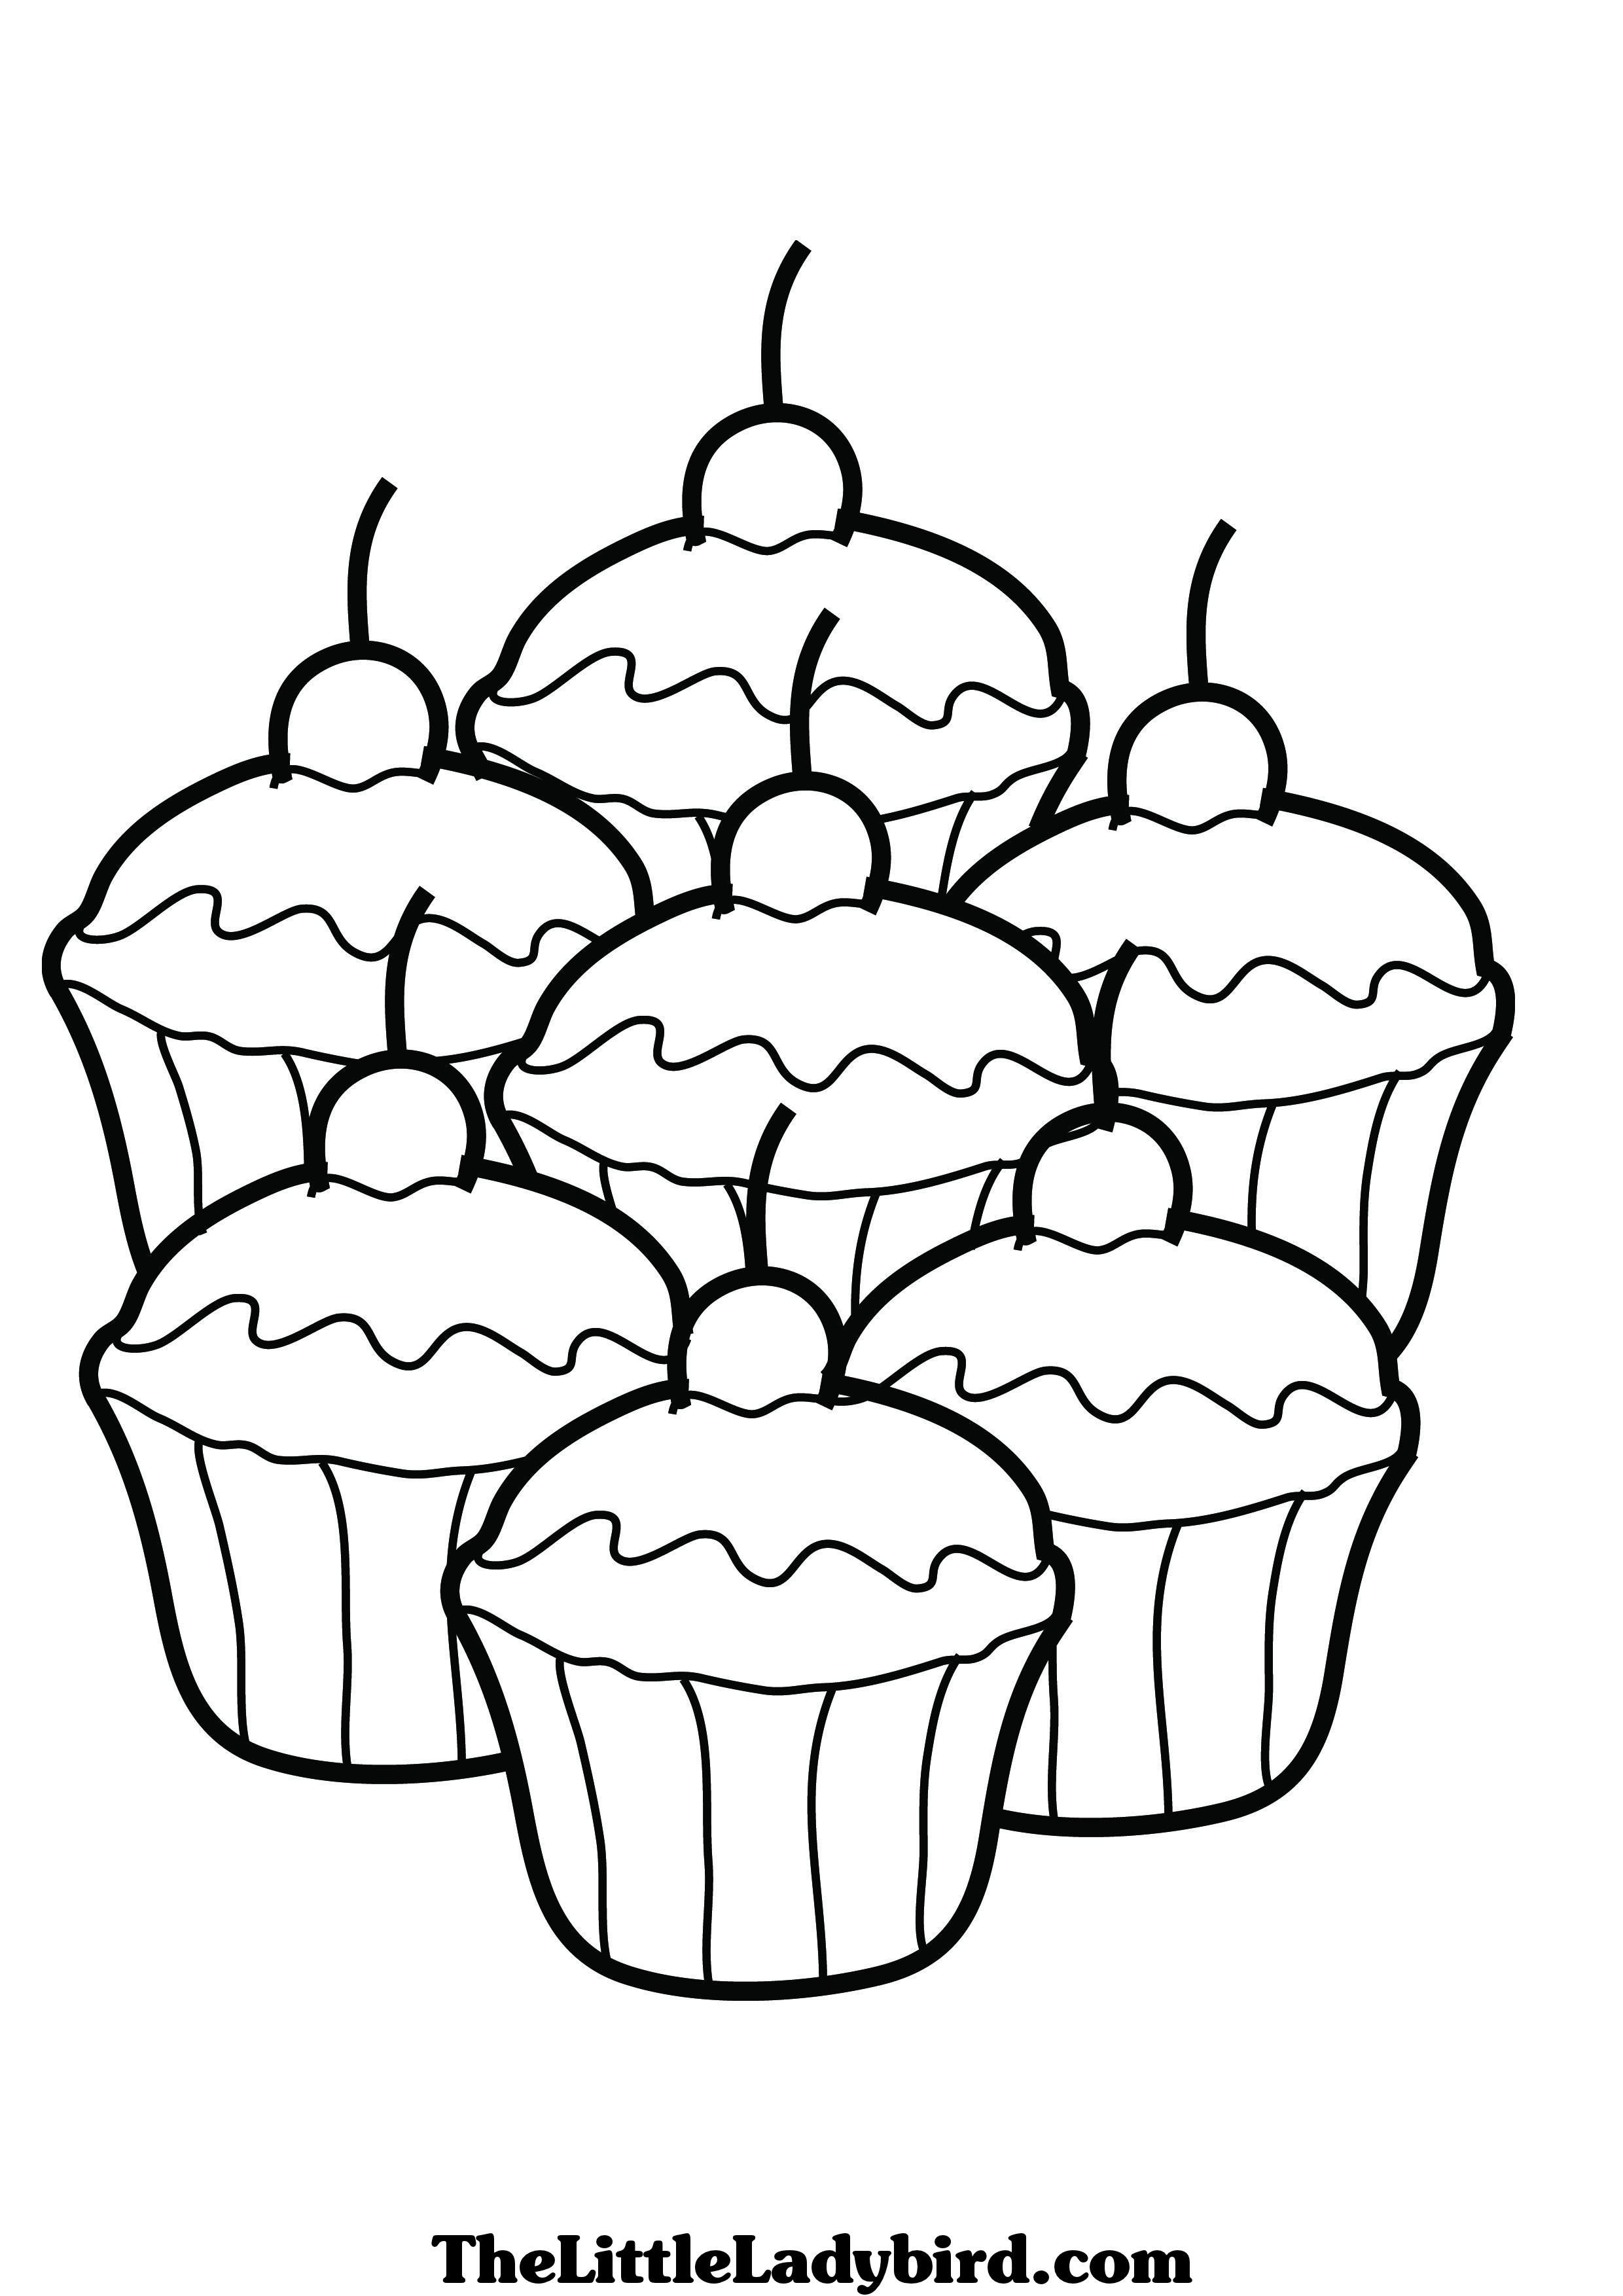 cupcake coloring pages free coloring pages | cup cake | Pinterest ...